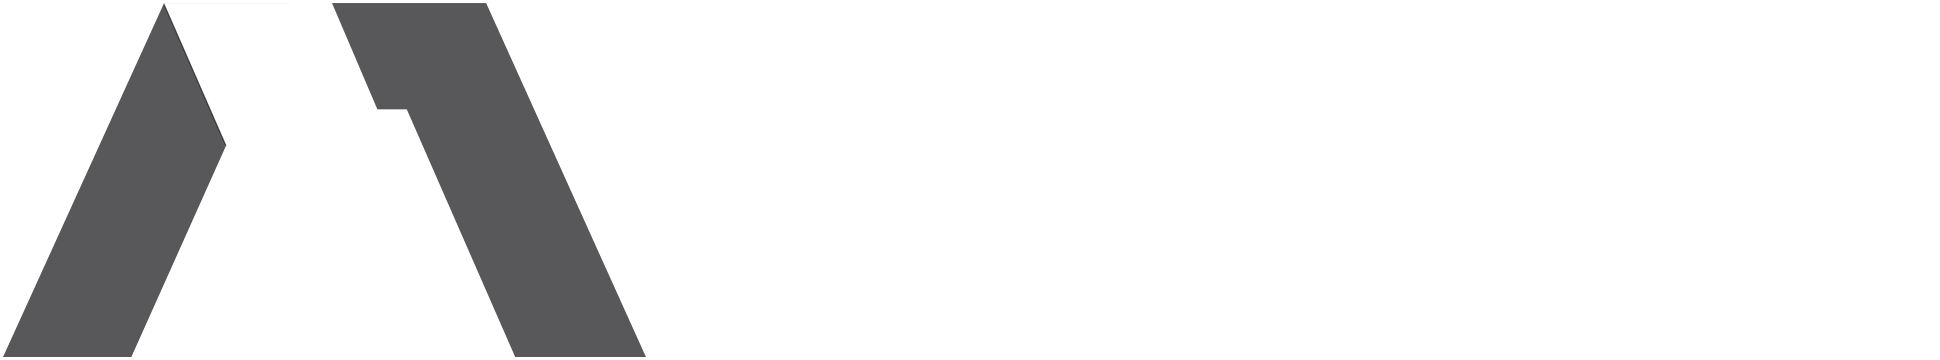 Alpha One Motors logo